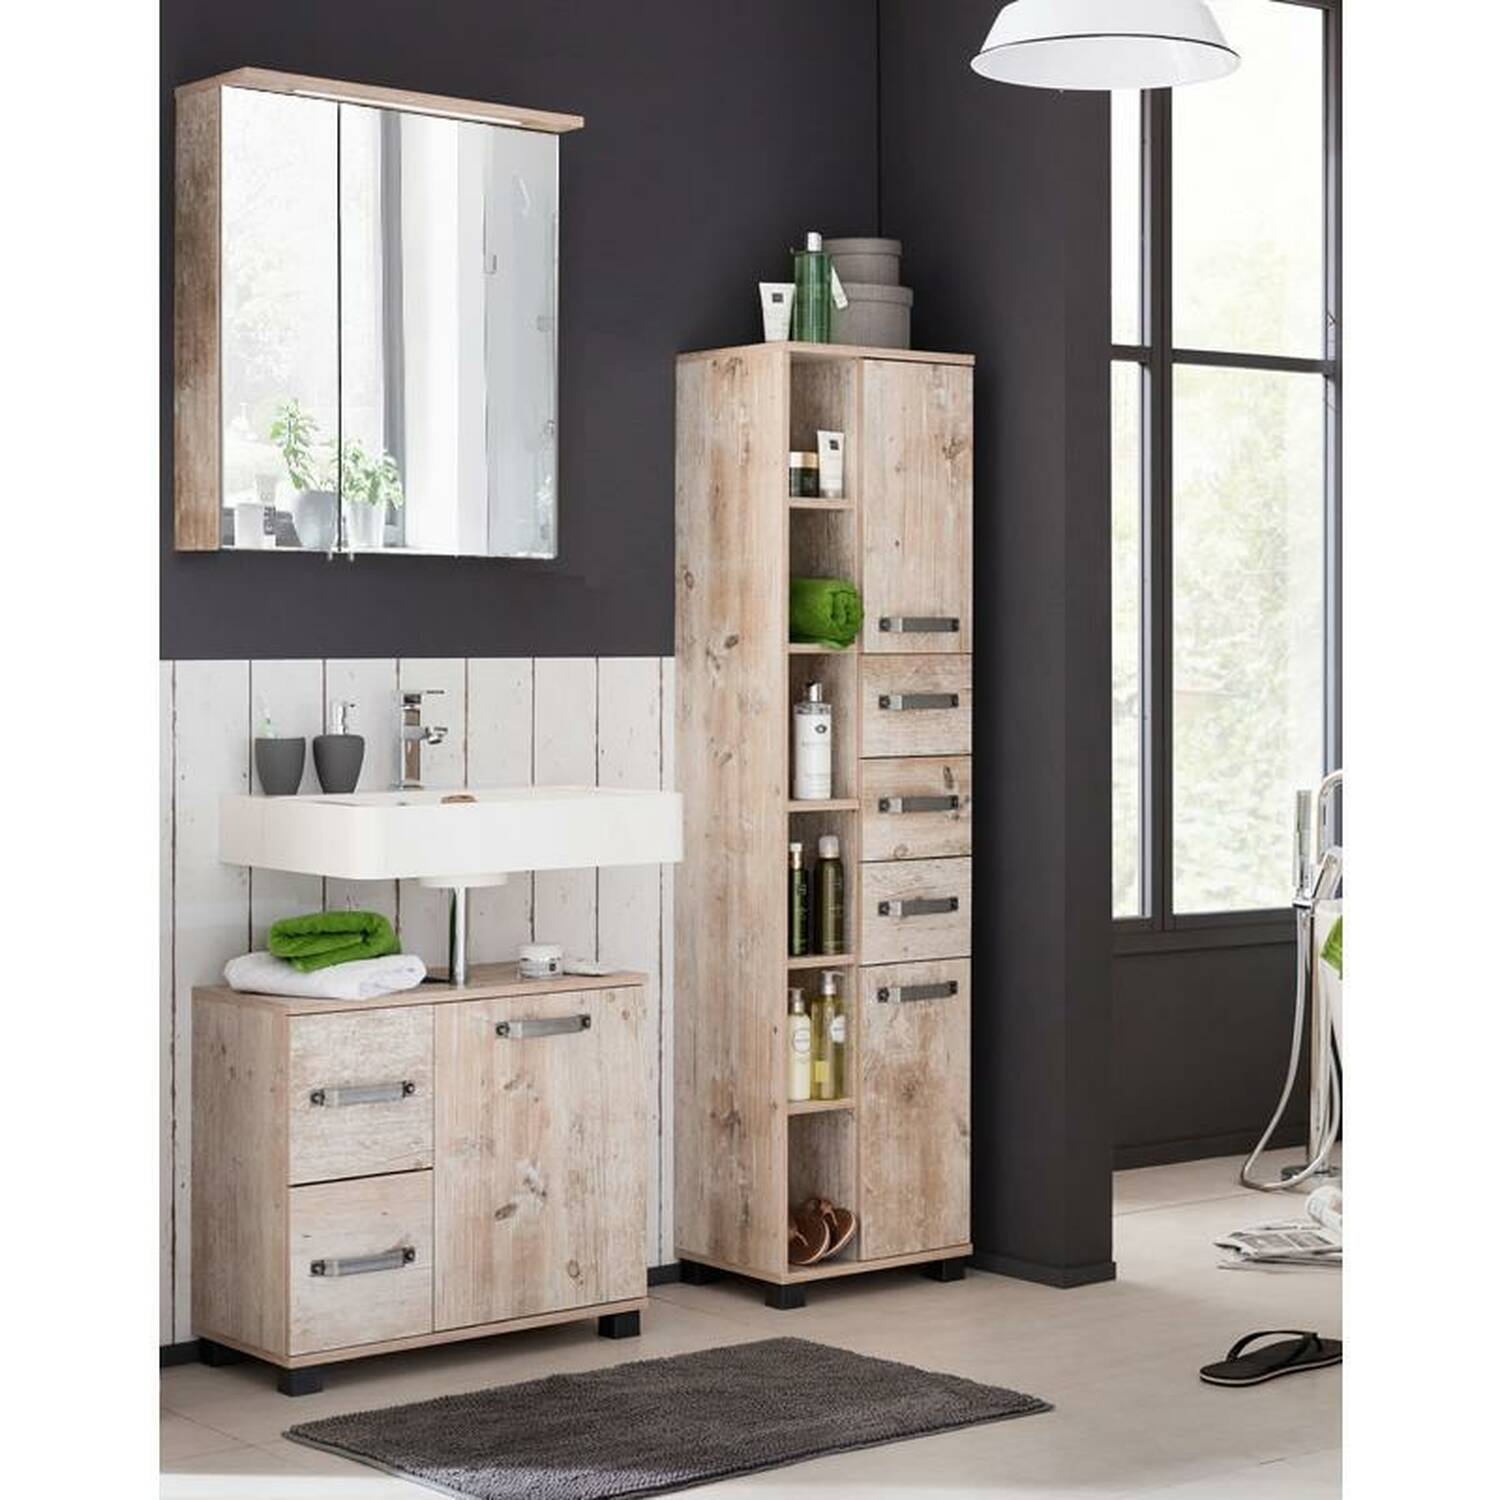 badm bel set lima 04 findusschalung 60cm spiege. Black Bedroom Furniture Sets. Home Design Ideas